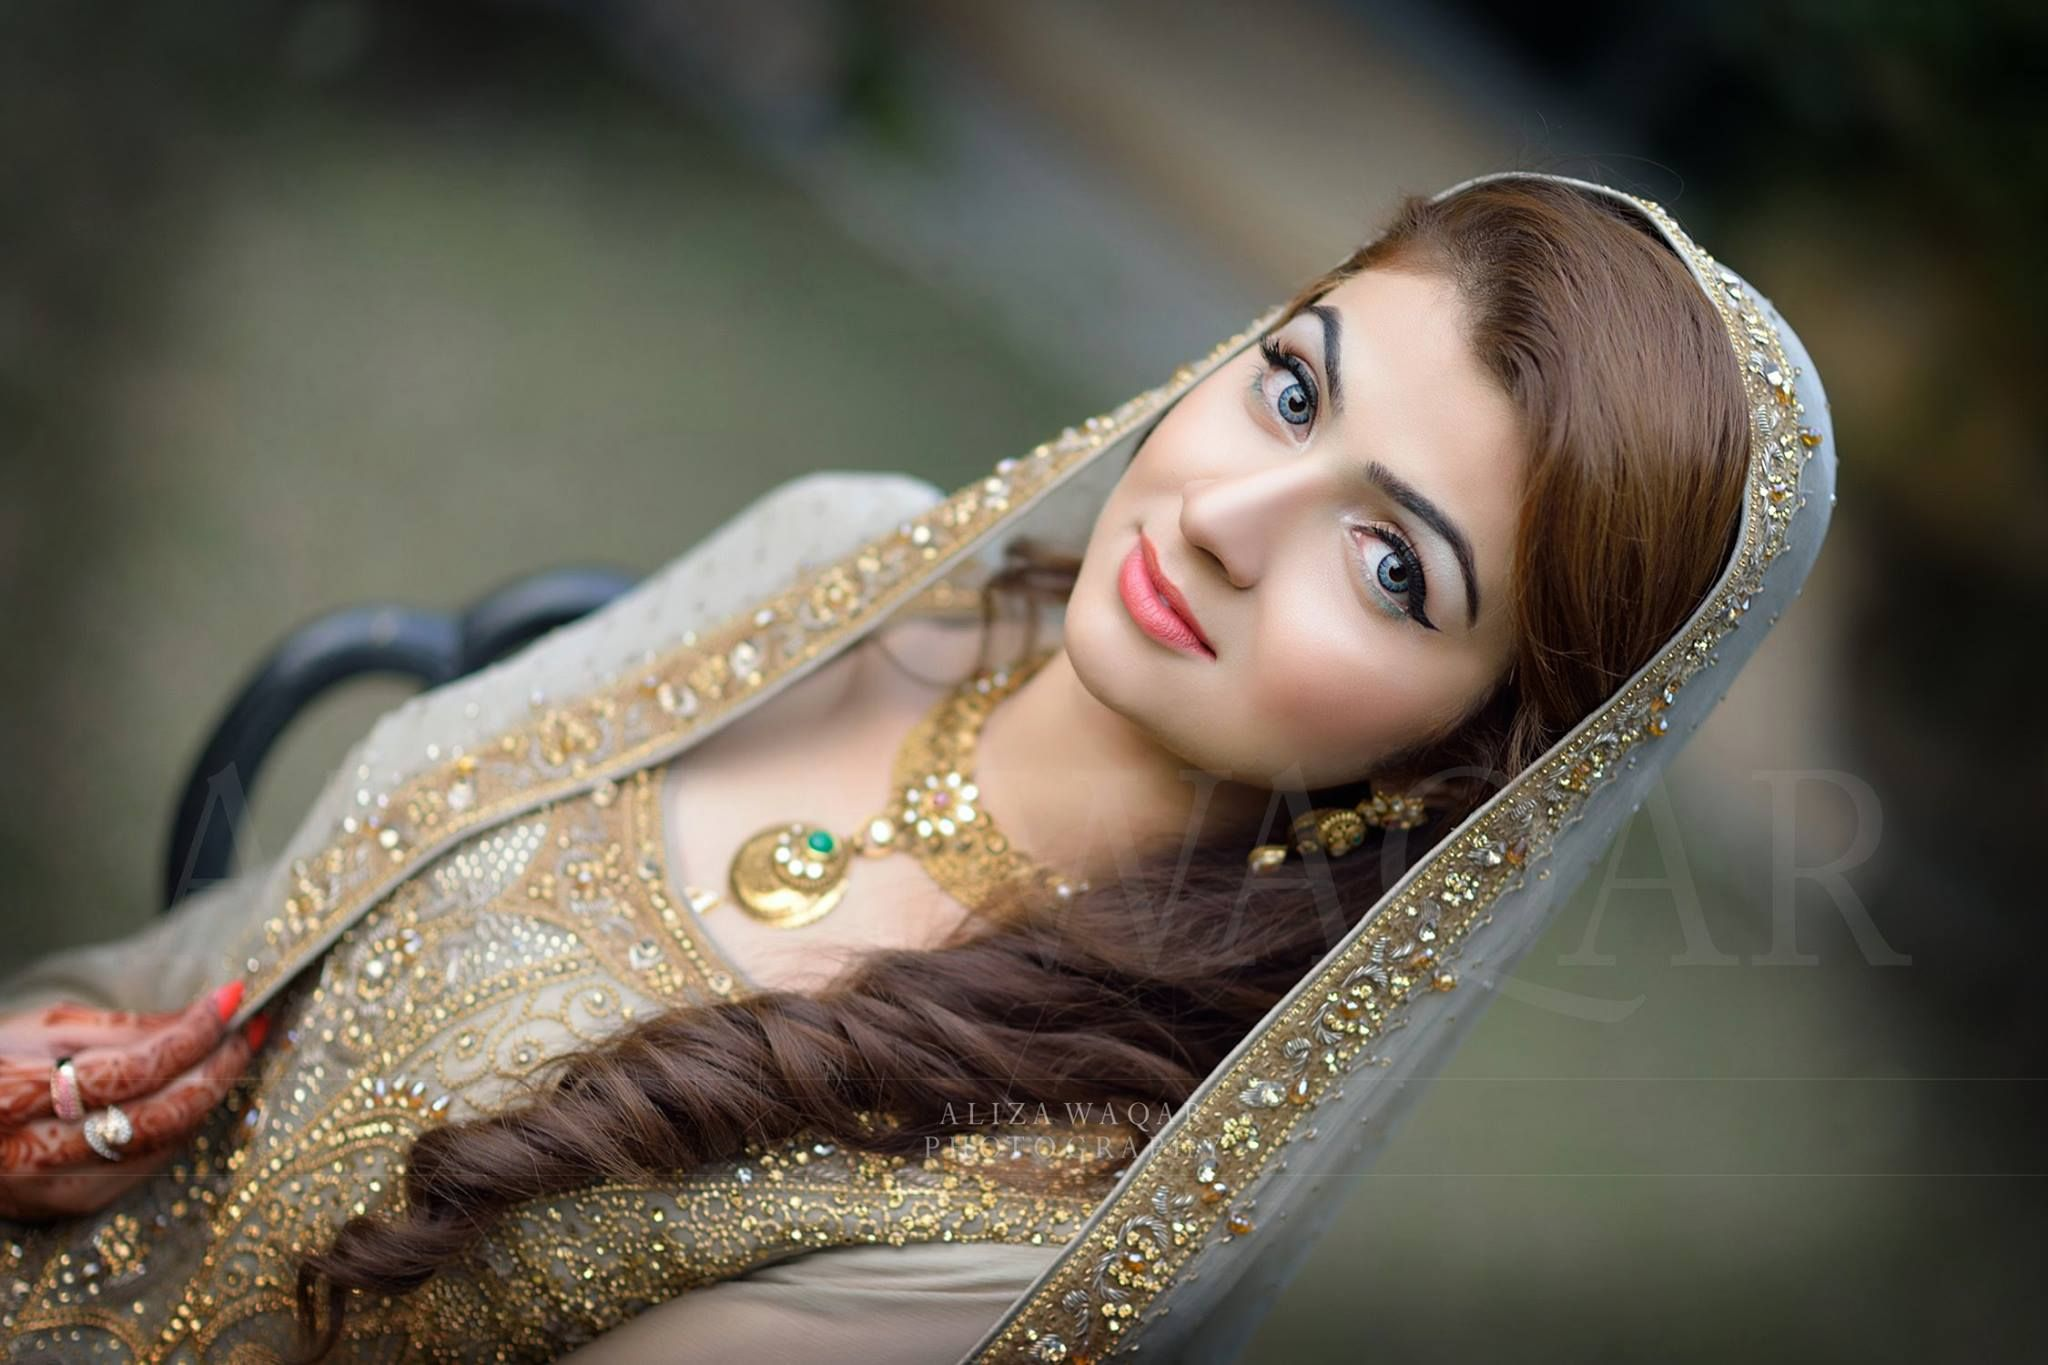 Aliza waqar photography | Wedding photography of engagement brides